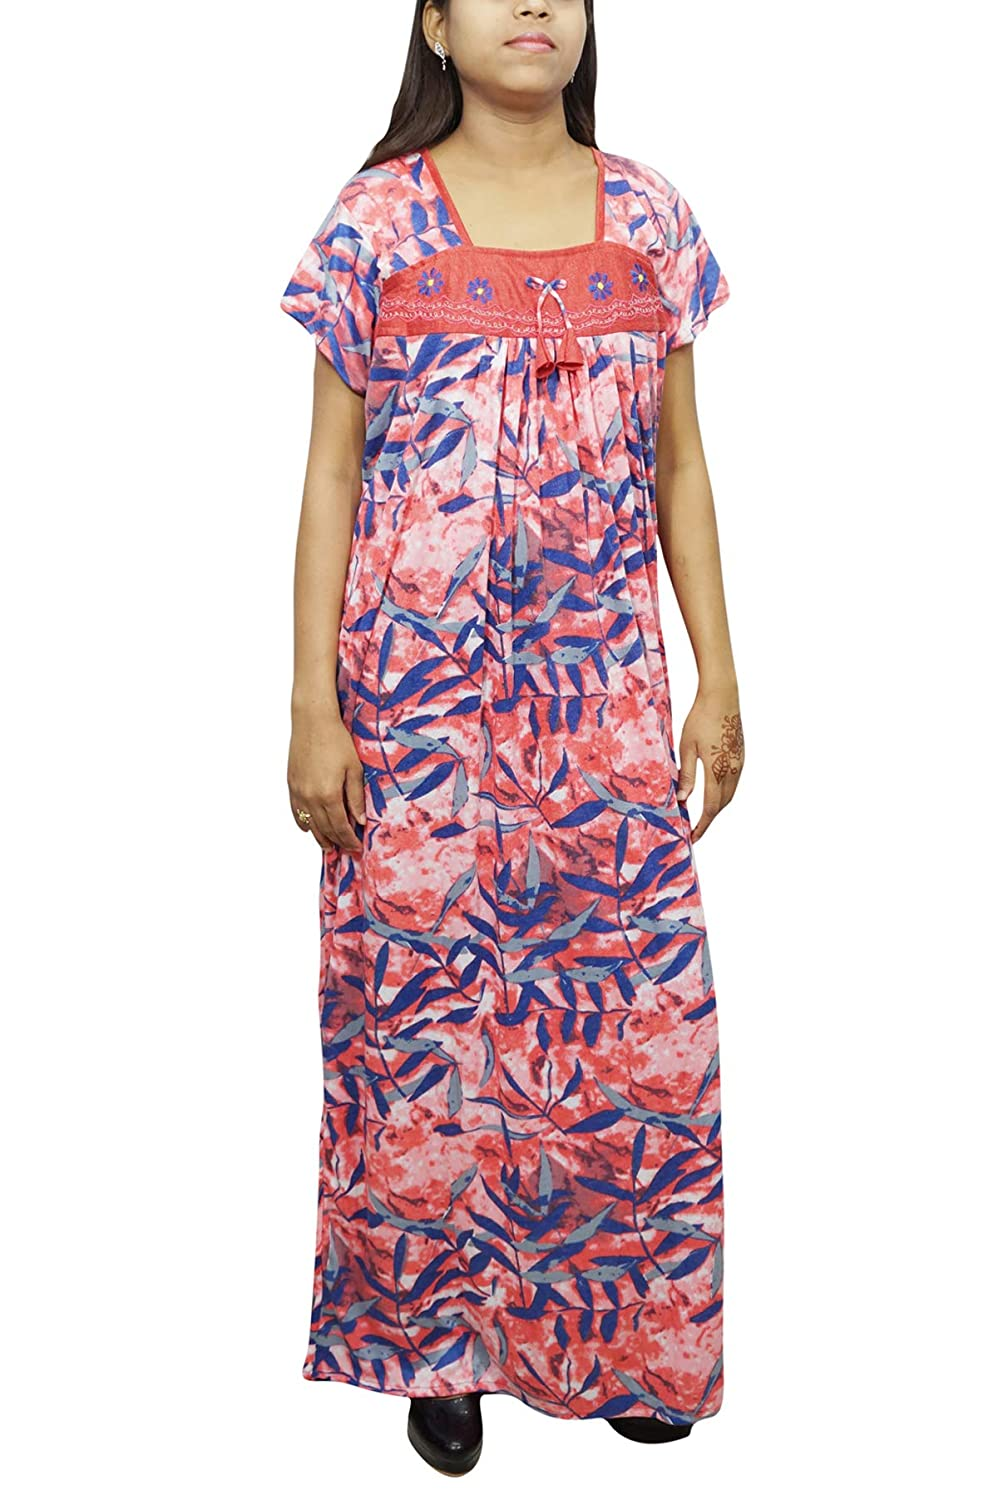 Indiatrendzs Women s Printed Maxi Nightgown Loose Fit Hosiery Nighty Peach  Blue  Amazon.in  Clothing   Accessories f63d895b9